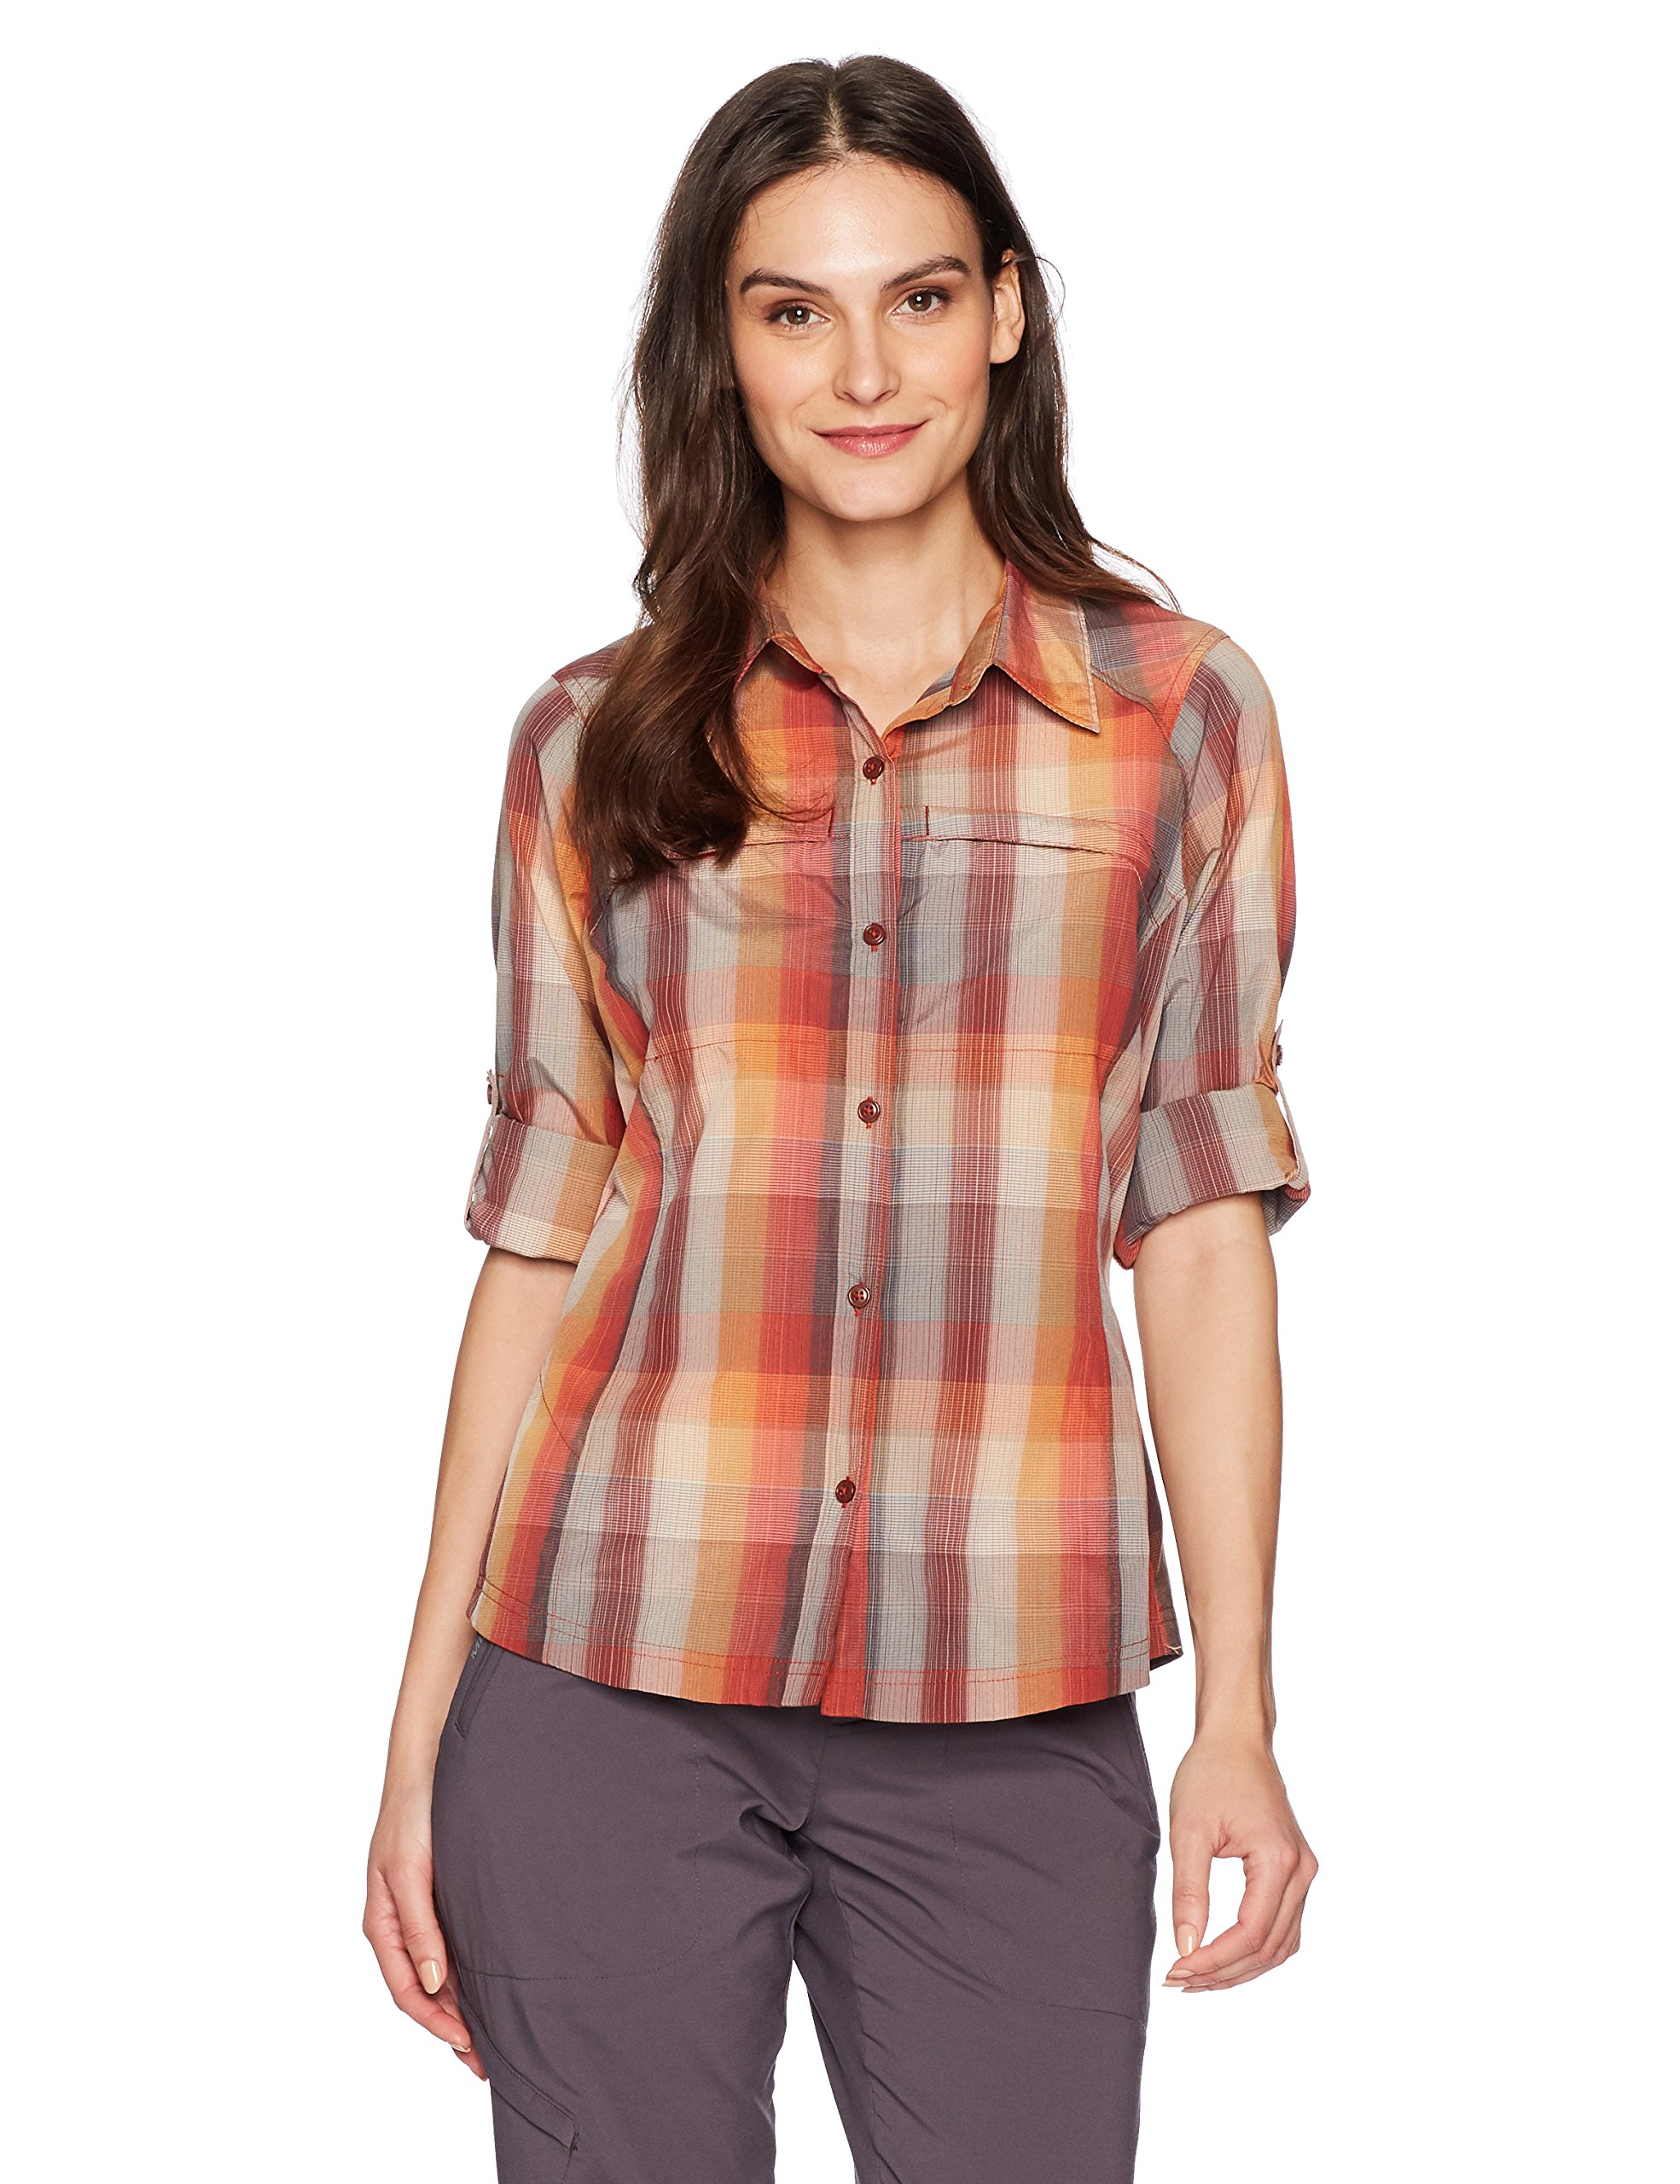 Columbia Silver Ridge Plaid Long Sleeve Shirt, Sail Red Ombre Plaid, X-Large by Columbia